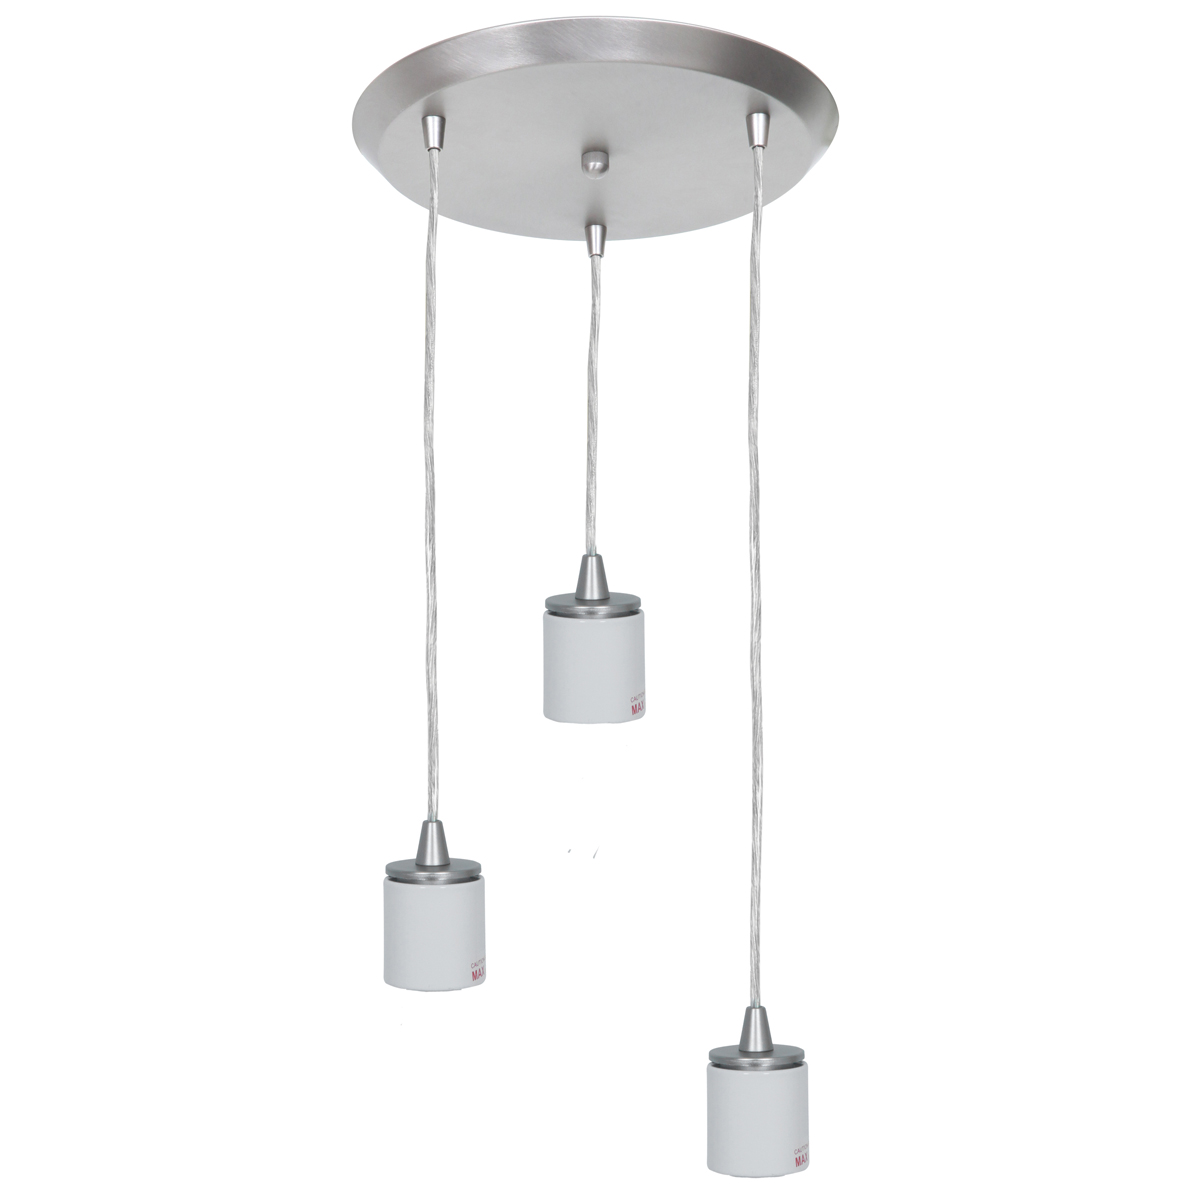 Access Lighting (52230FC) Circ 3-Light 11 Inch Canopy Pendant Assembly shown in Brushed Steel